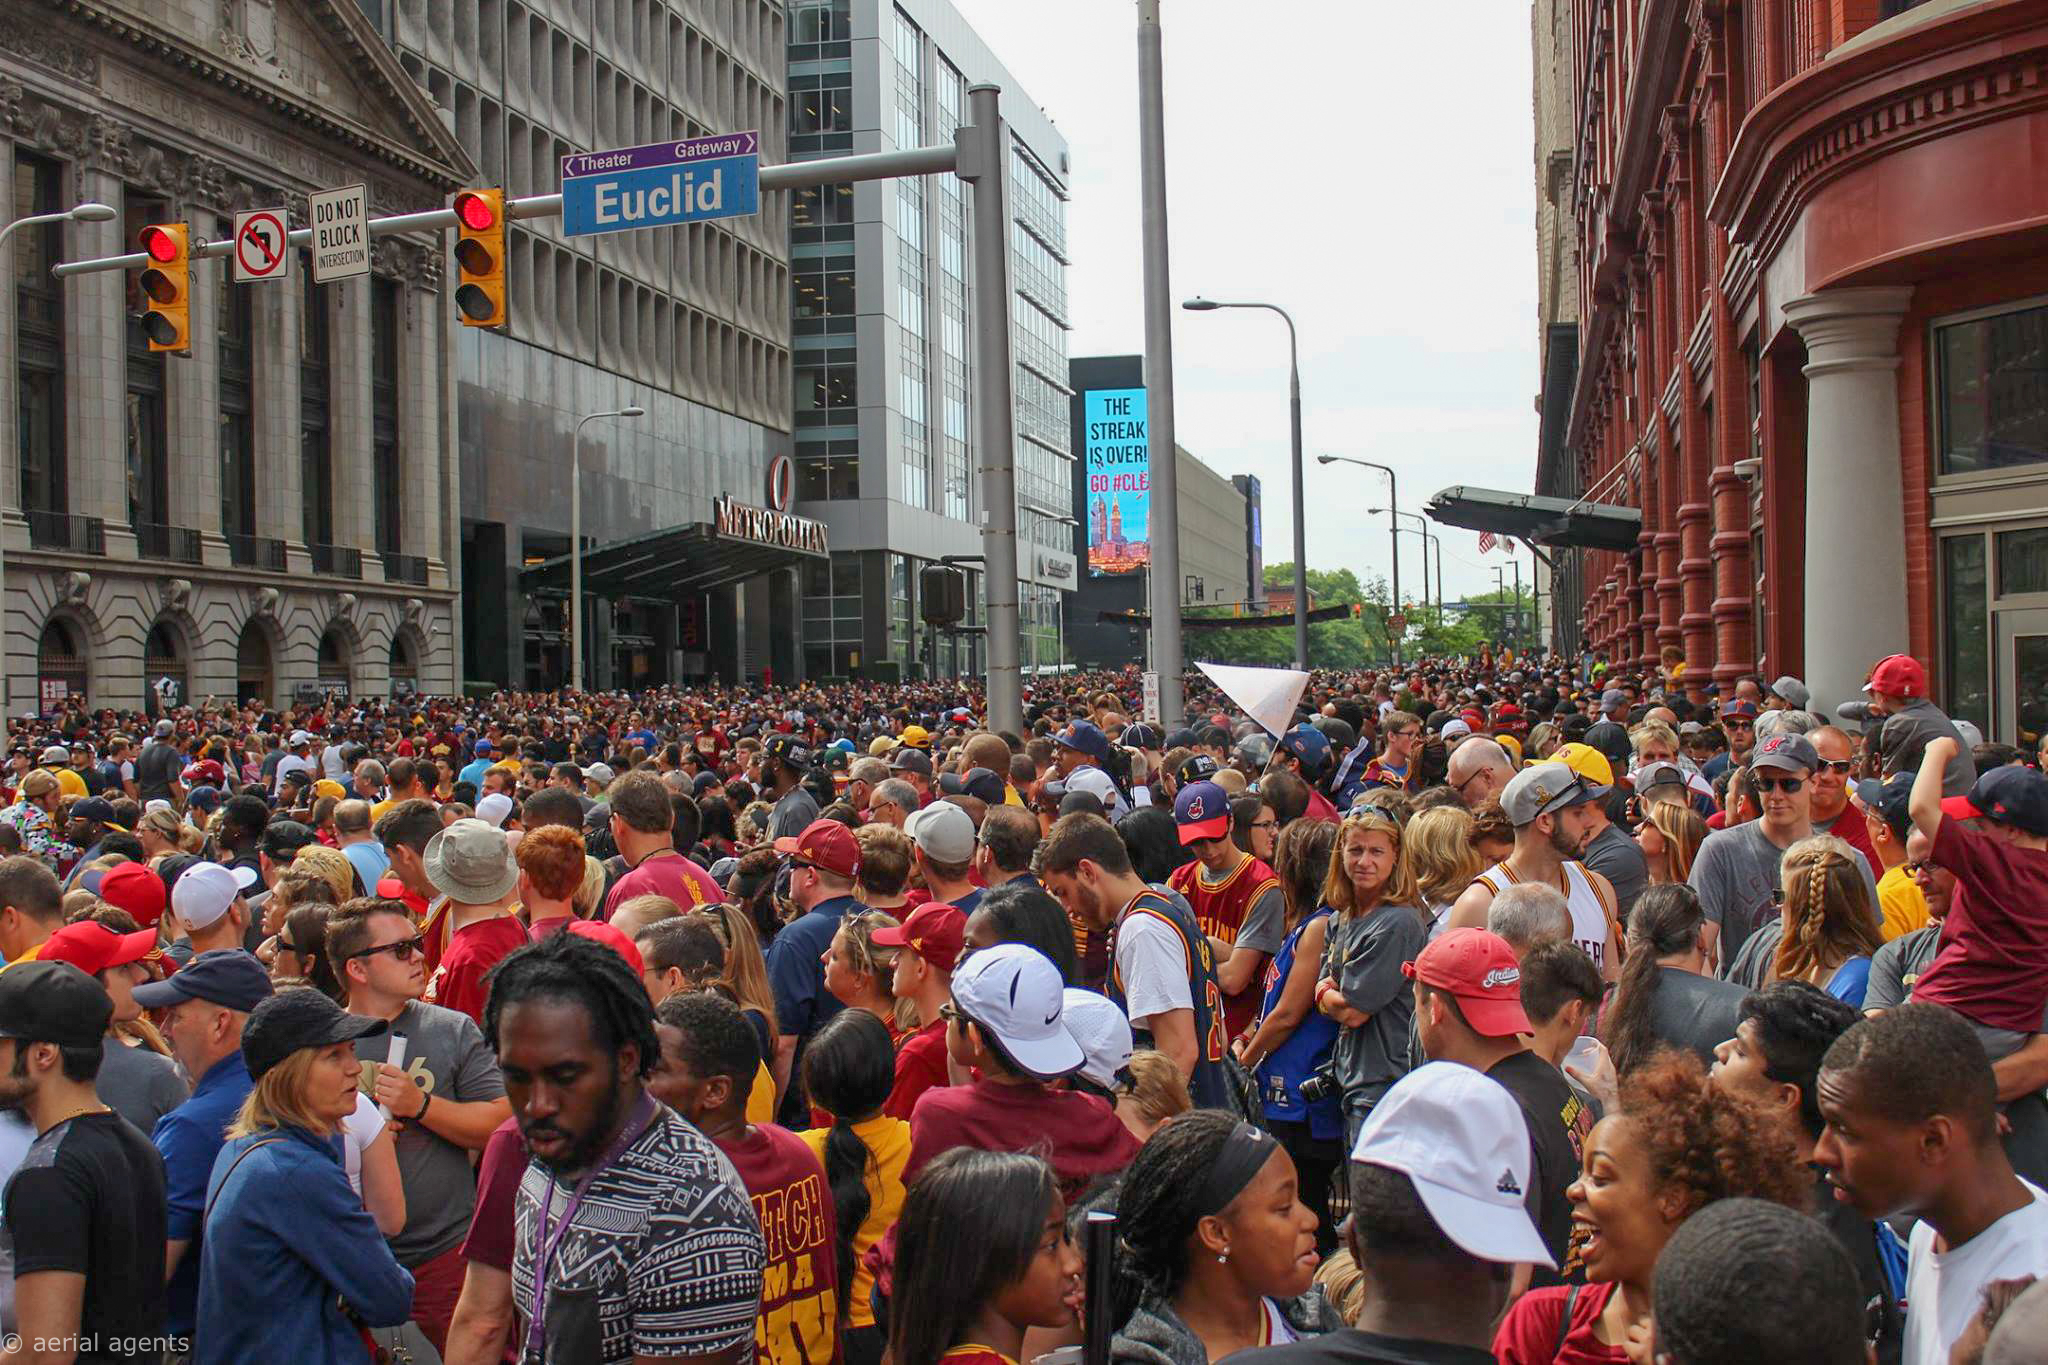 E.9th St in Downtown Cleveland Jam Packed